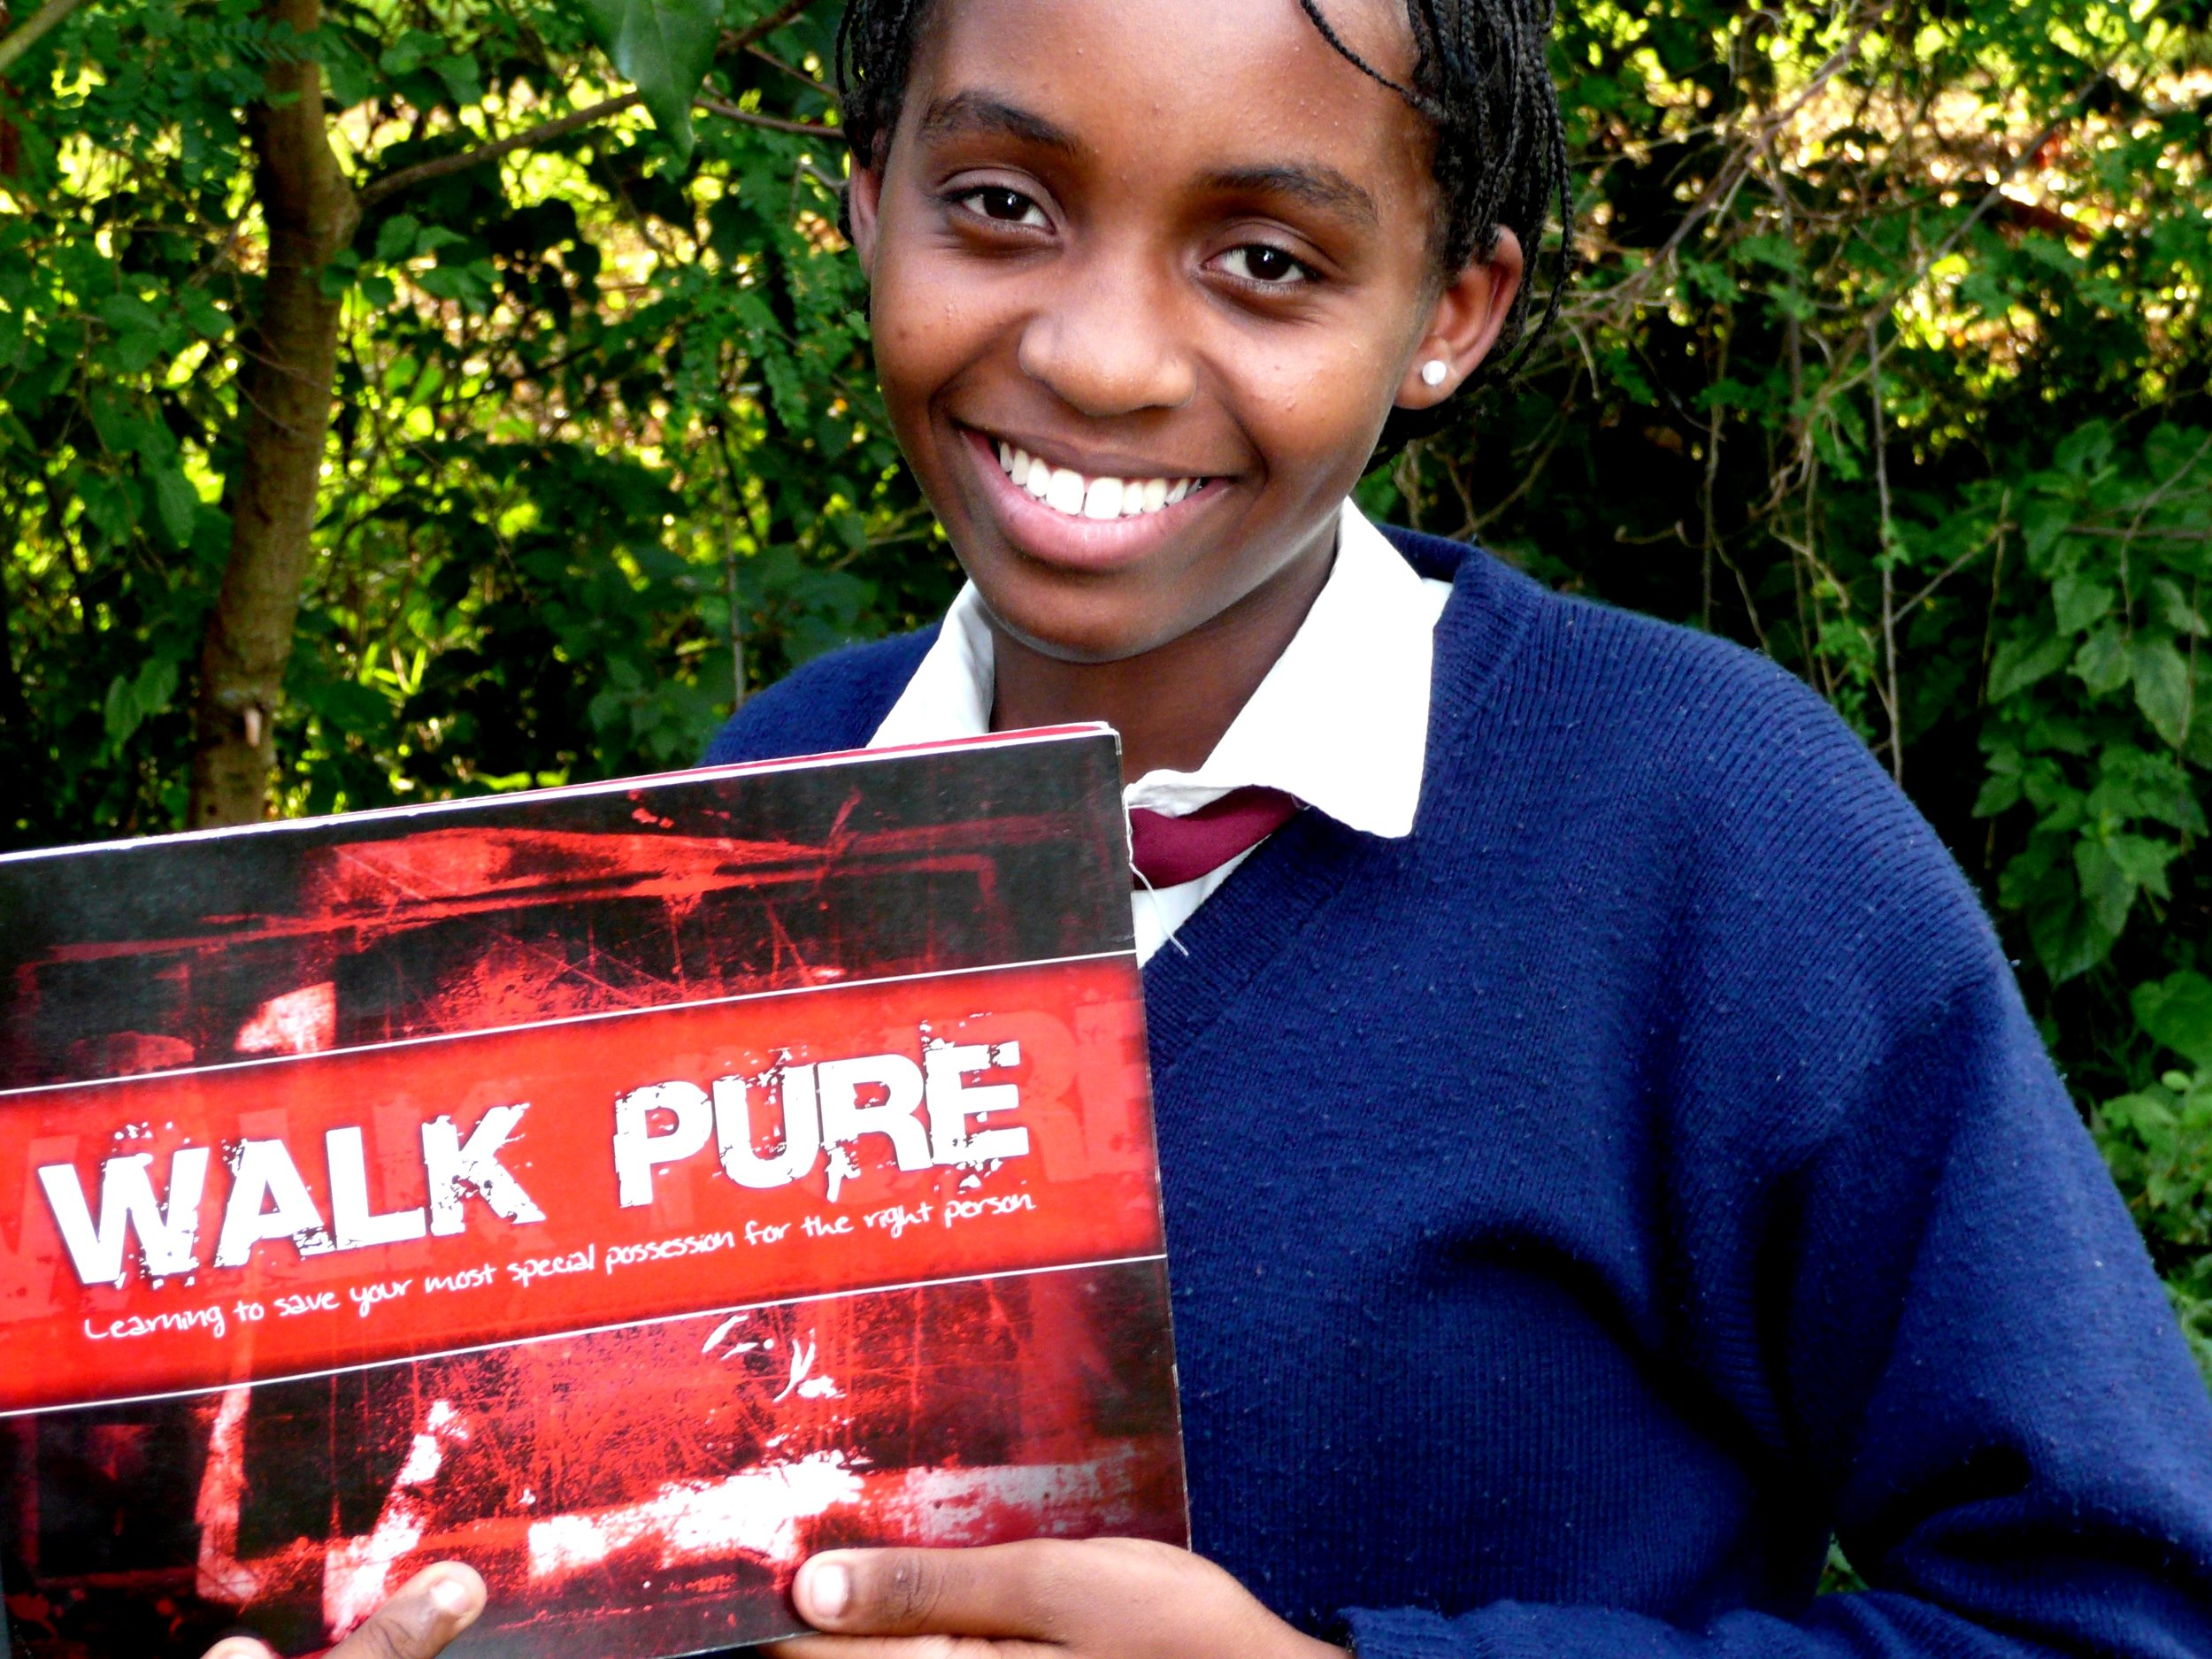 Girl with Walk Pure book.JPG